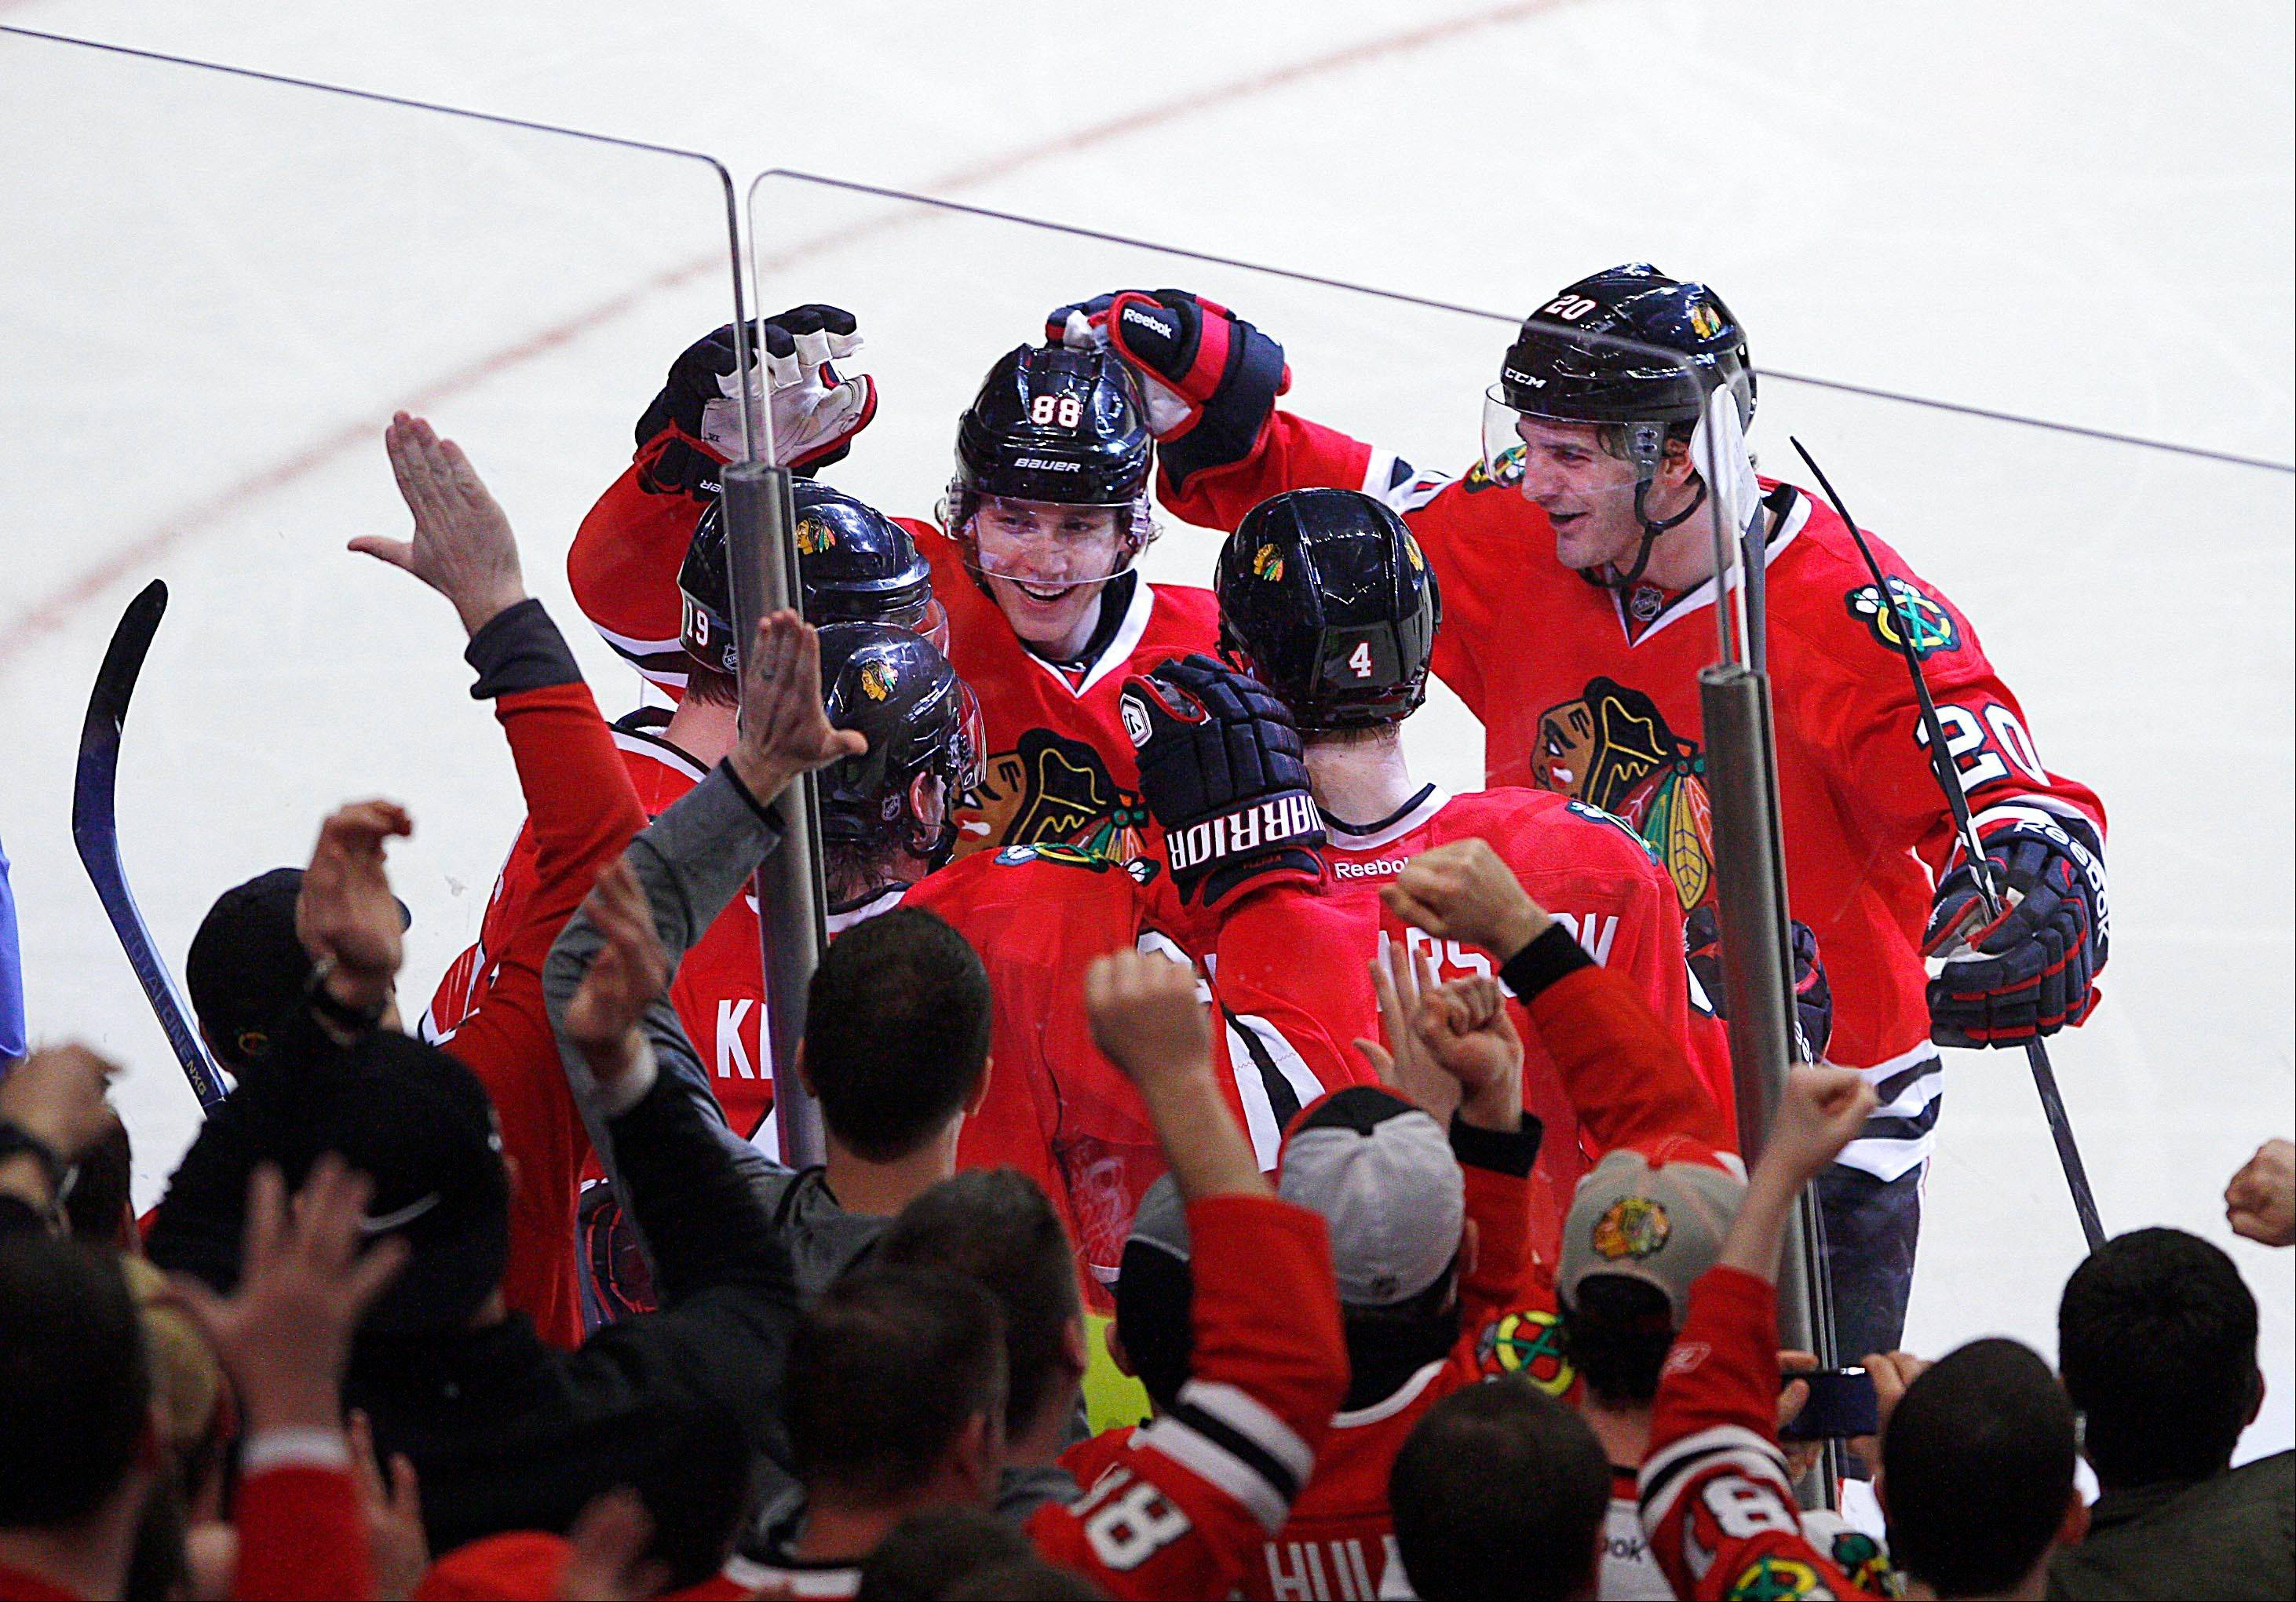 Blackhawks players including Patrick Kane, Brandon Saad, Duncan Keith and Niklas Hjalmarsson surround Jonathan Toews, lower left, after Toews scored the go-ahead goal in the third period Sunday night.